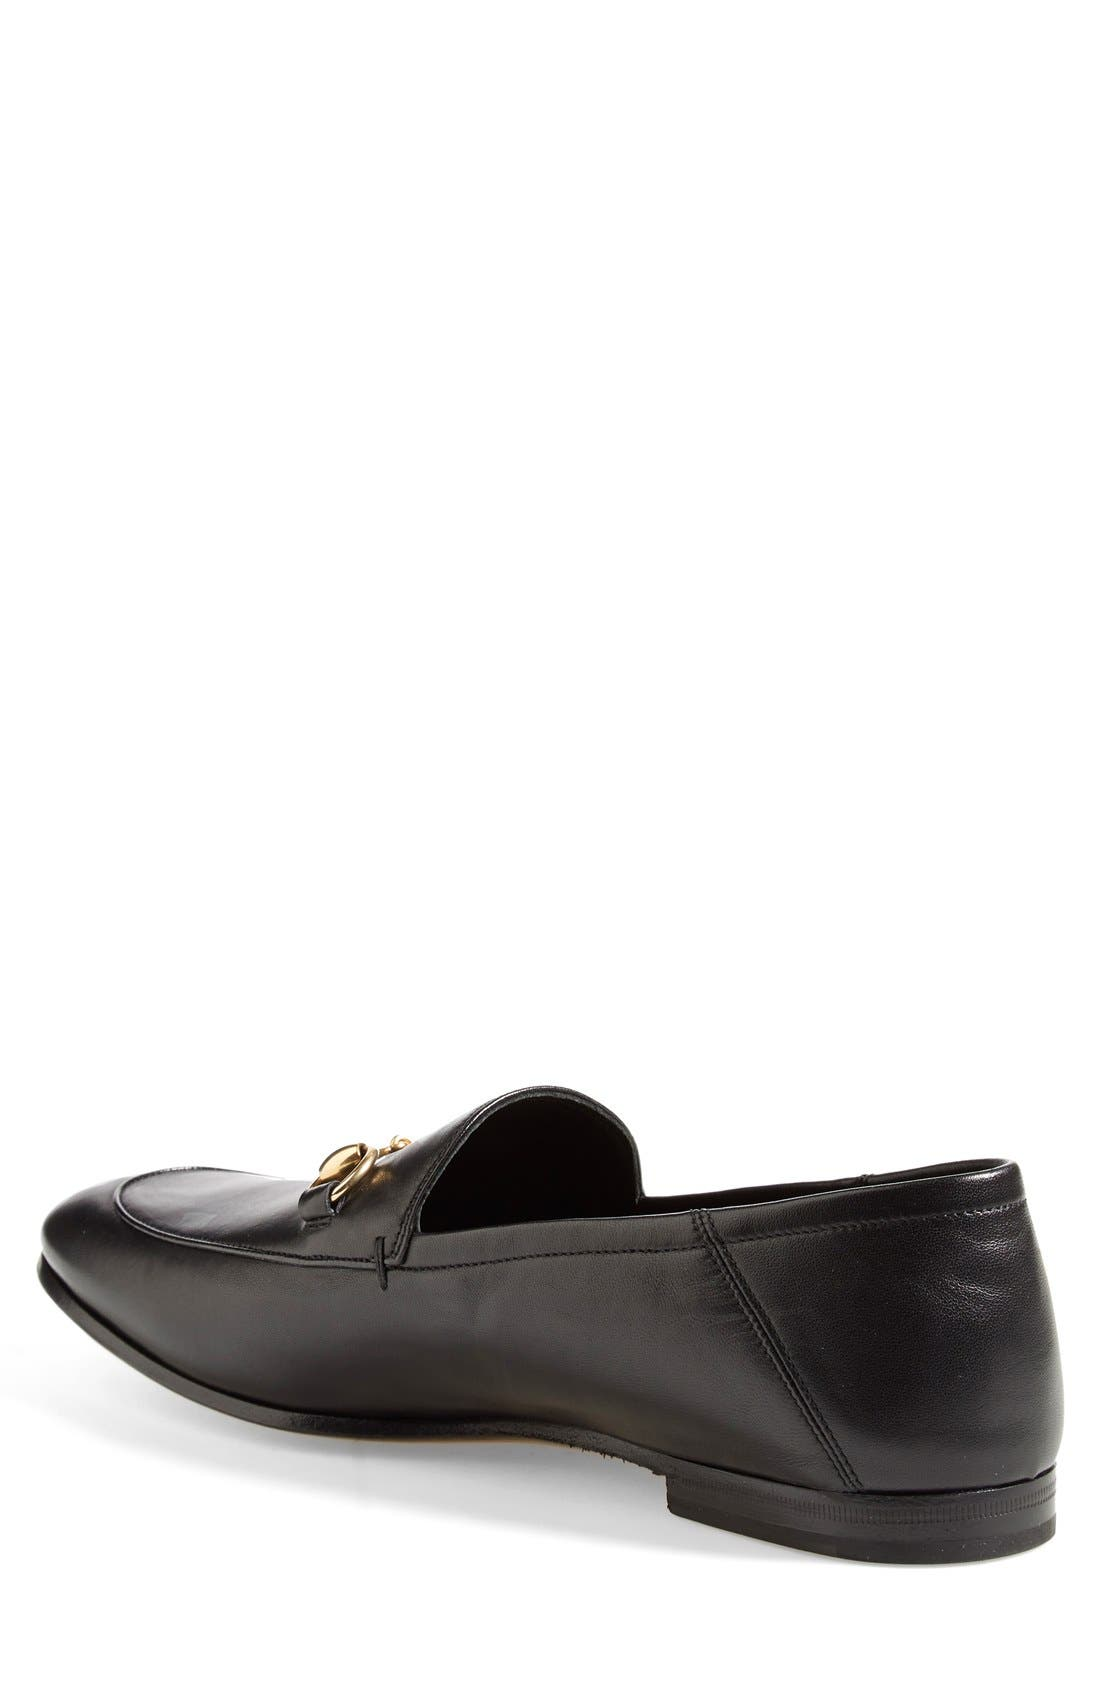 GUCCI, Brixton Leather Loafer, Alternate thumbnail 3, color, NERO LEATHER